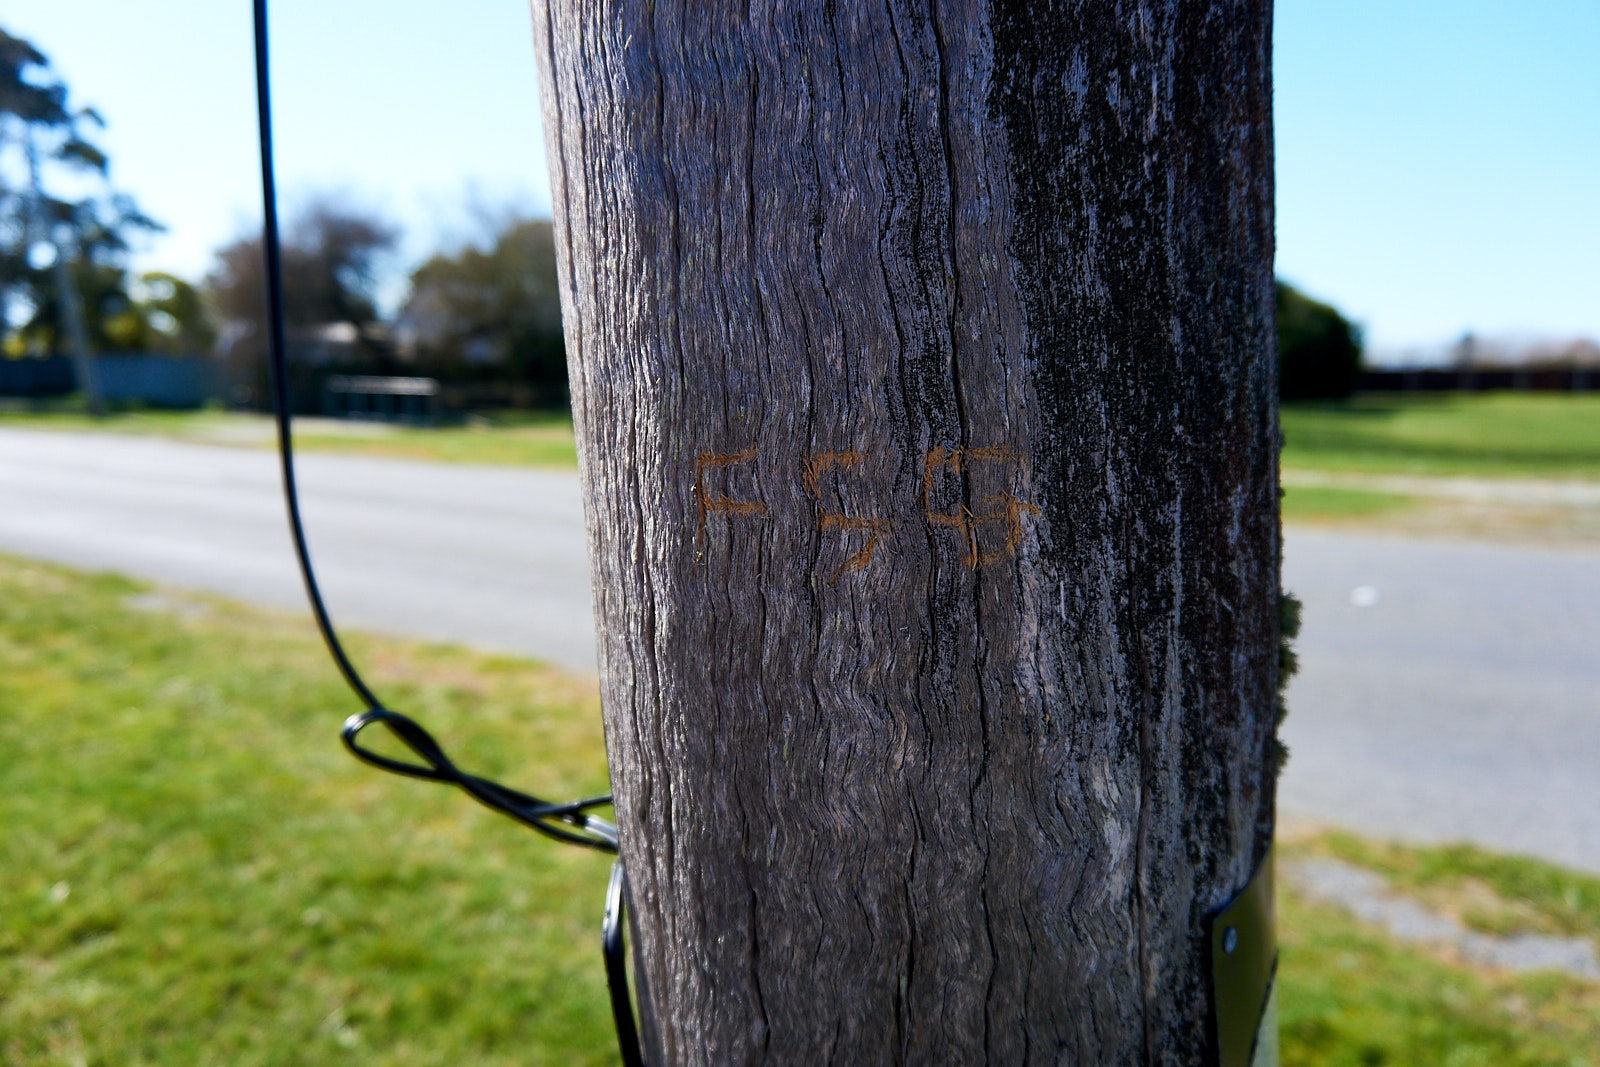 Initals carved into a lamppost